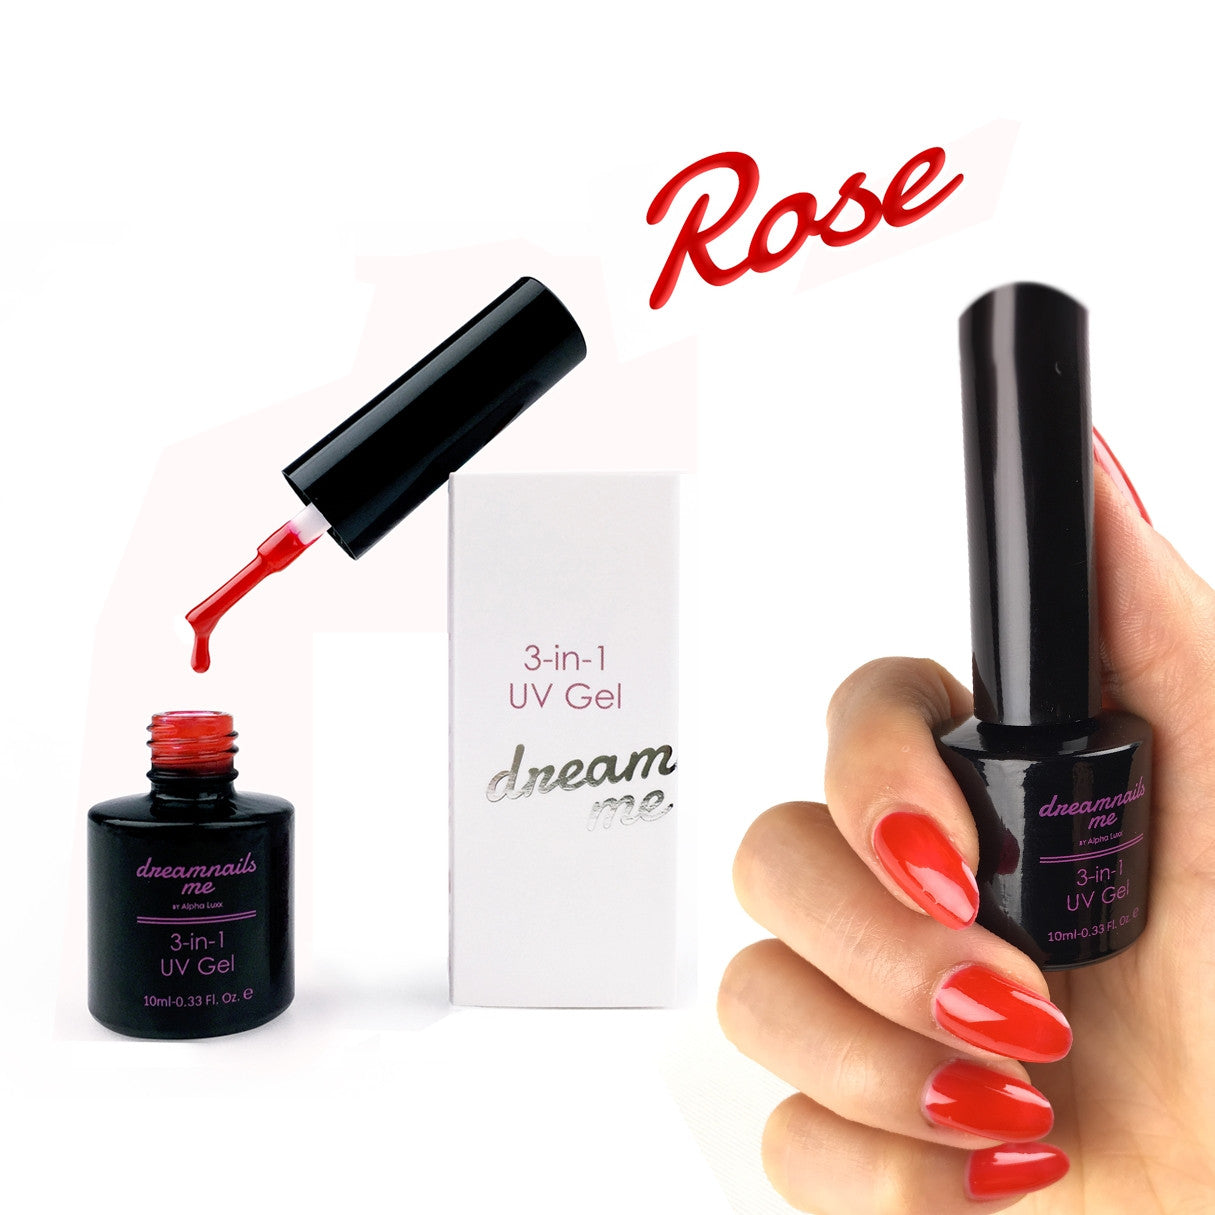 3-in-1 UV Gel Nail Polish by dreamnails me